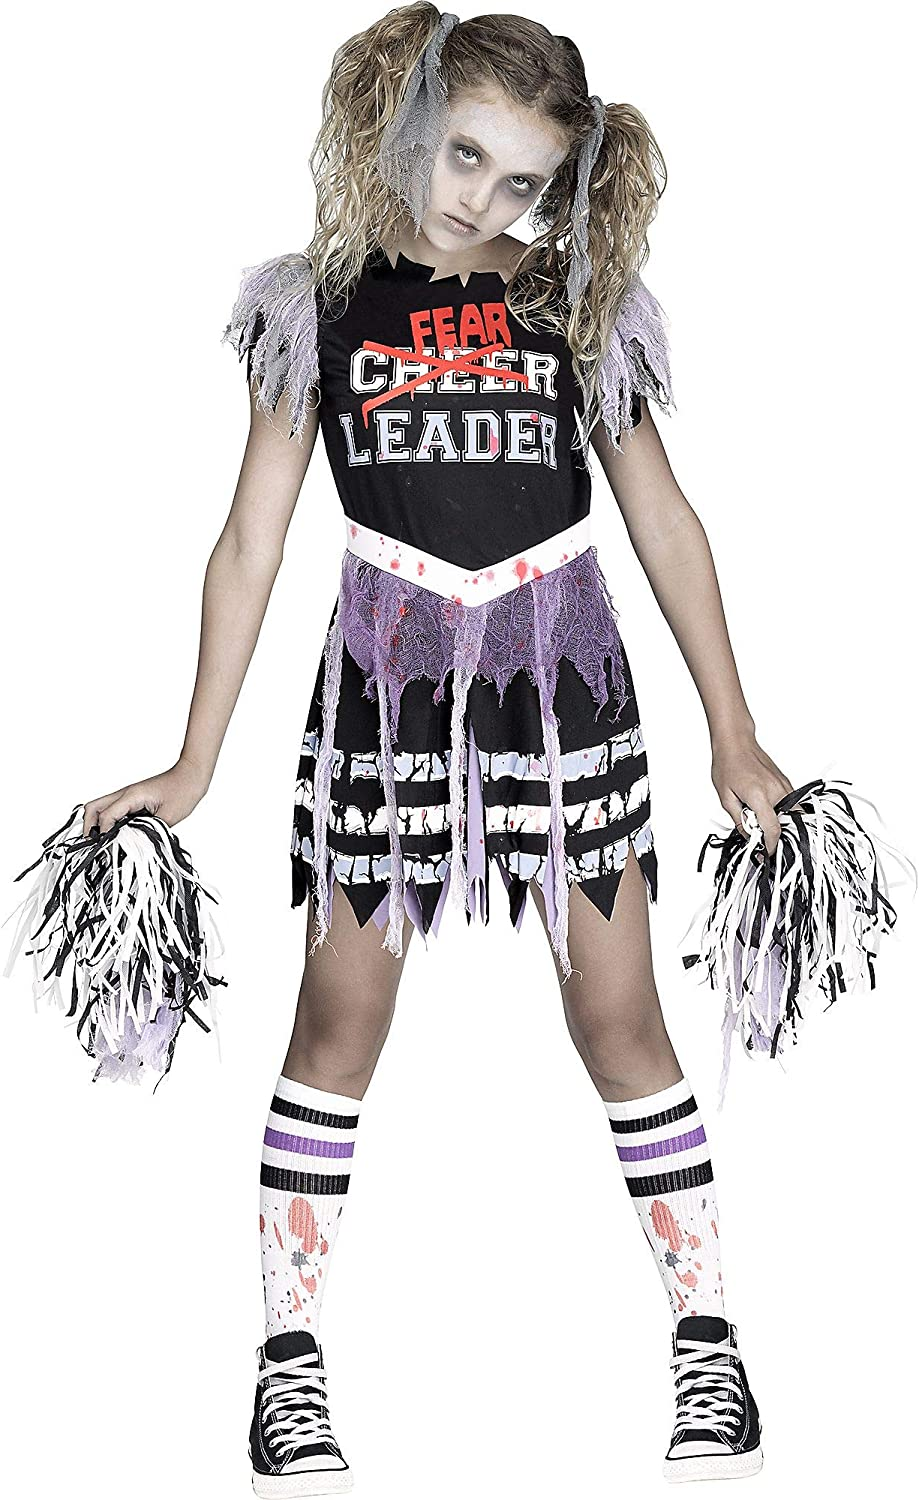 Fun World Zombie Fearleader 2021new shipping free Costume Multicolor X-Large 14-16 Virginia Beach Mall